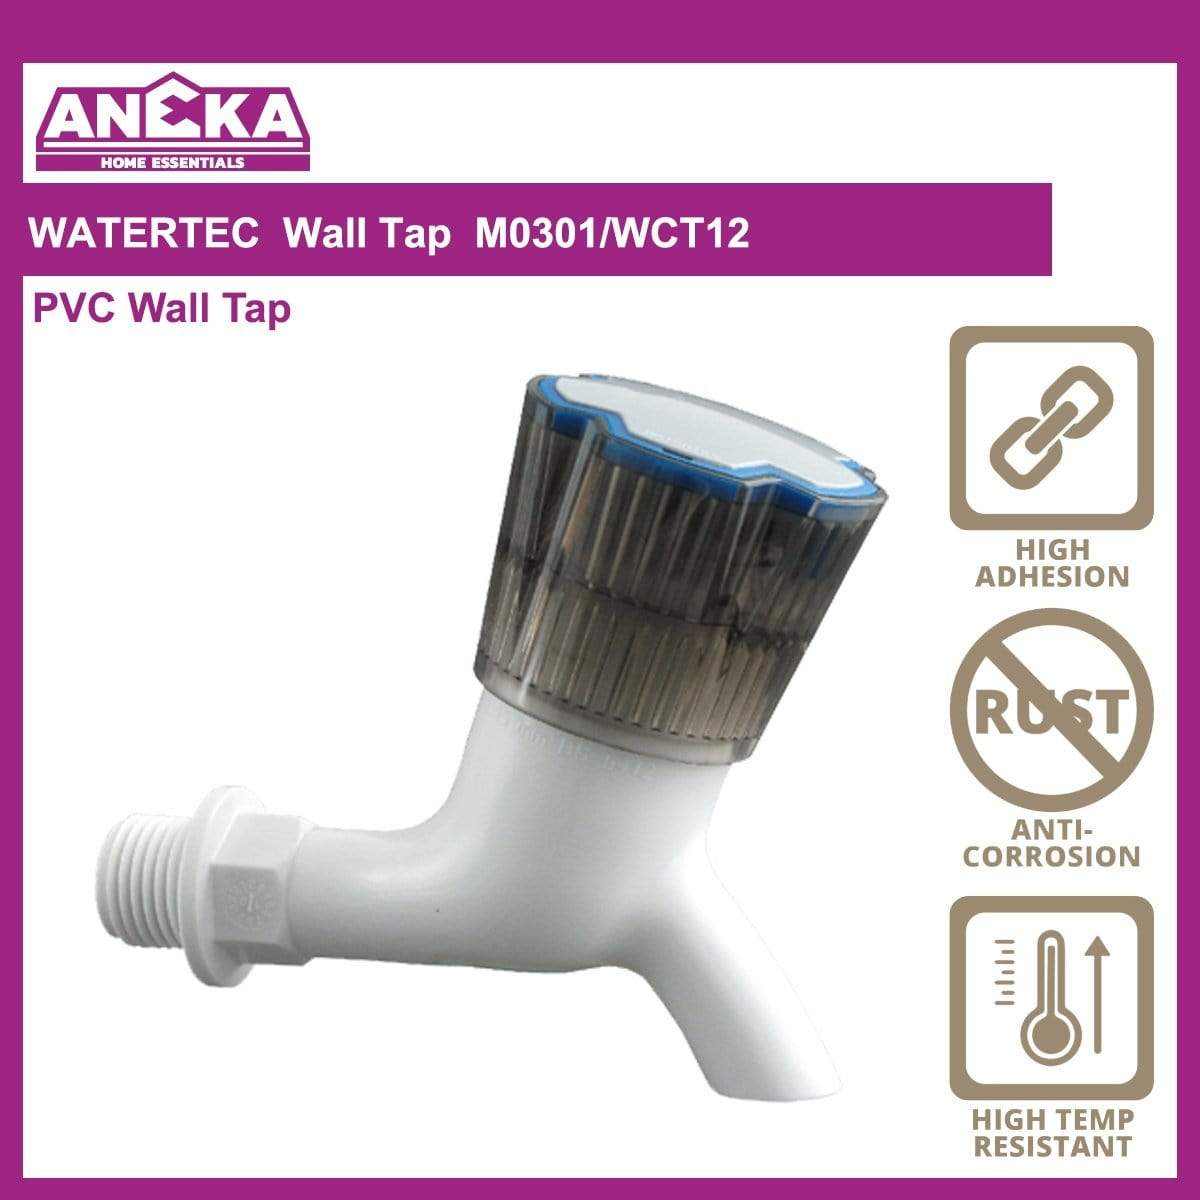 WATERTEC Wall Tap M0301/WCT12